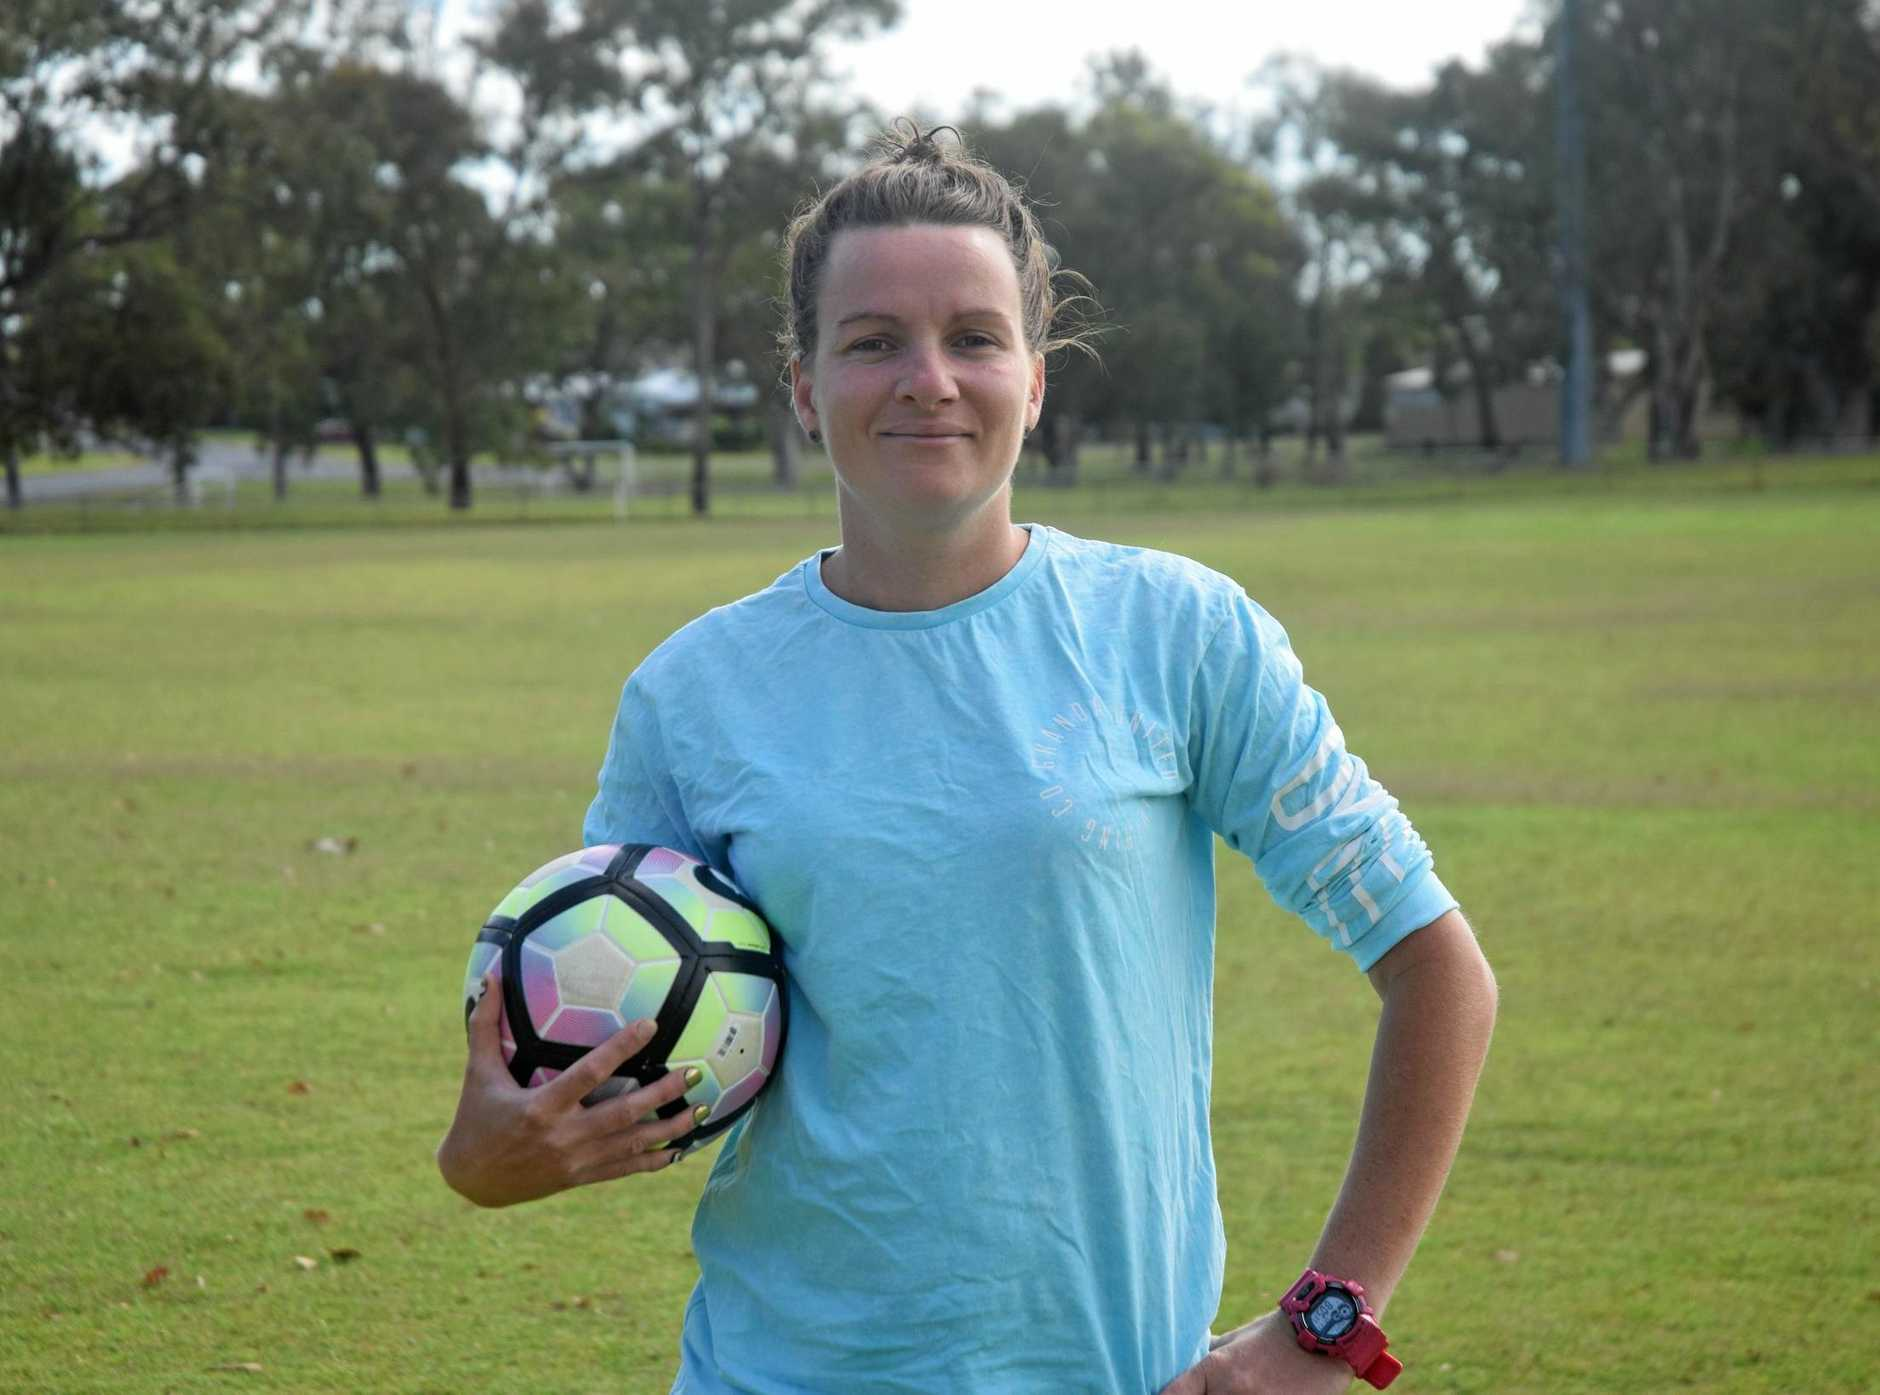 LOCAL CHAMPION: Soccer player Justeen Kruger will play for South West Queensland Thunder in Toowoomba next season.